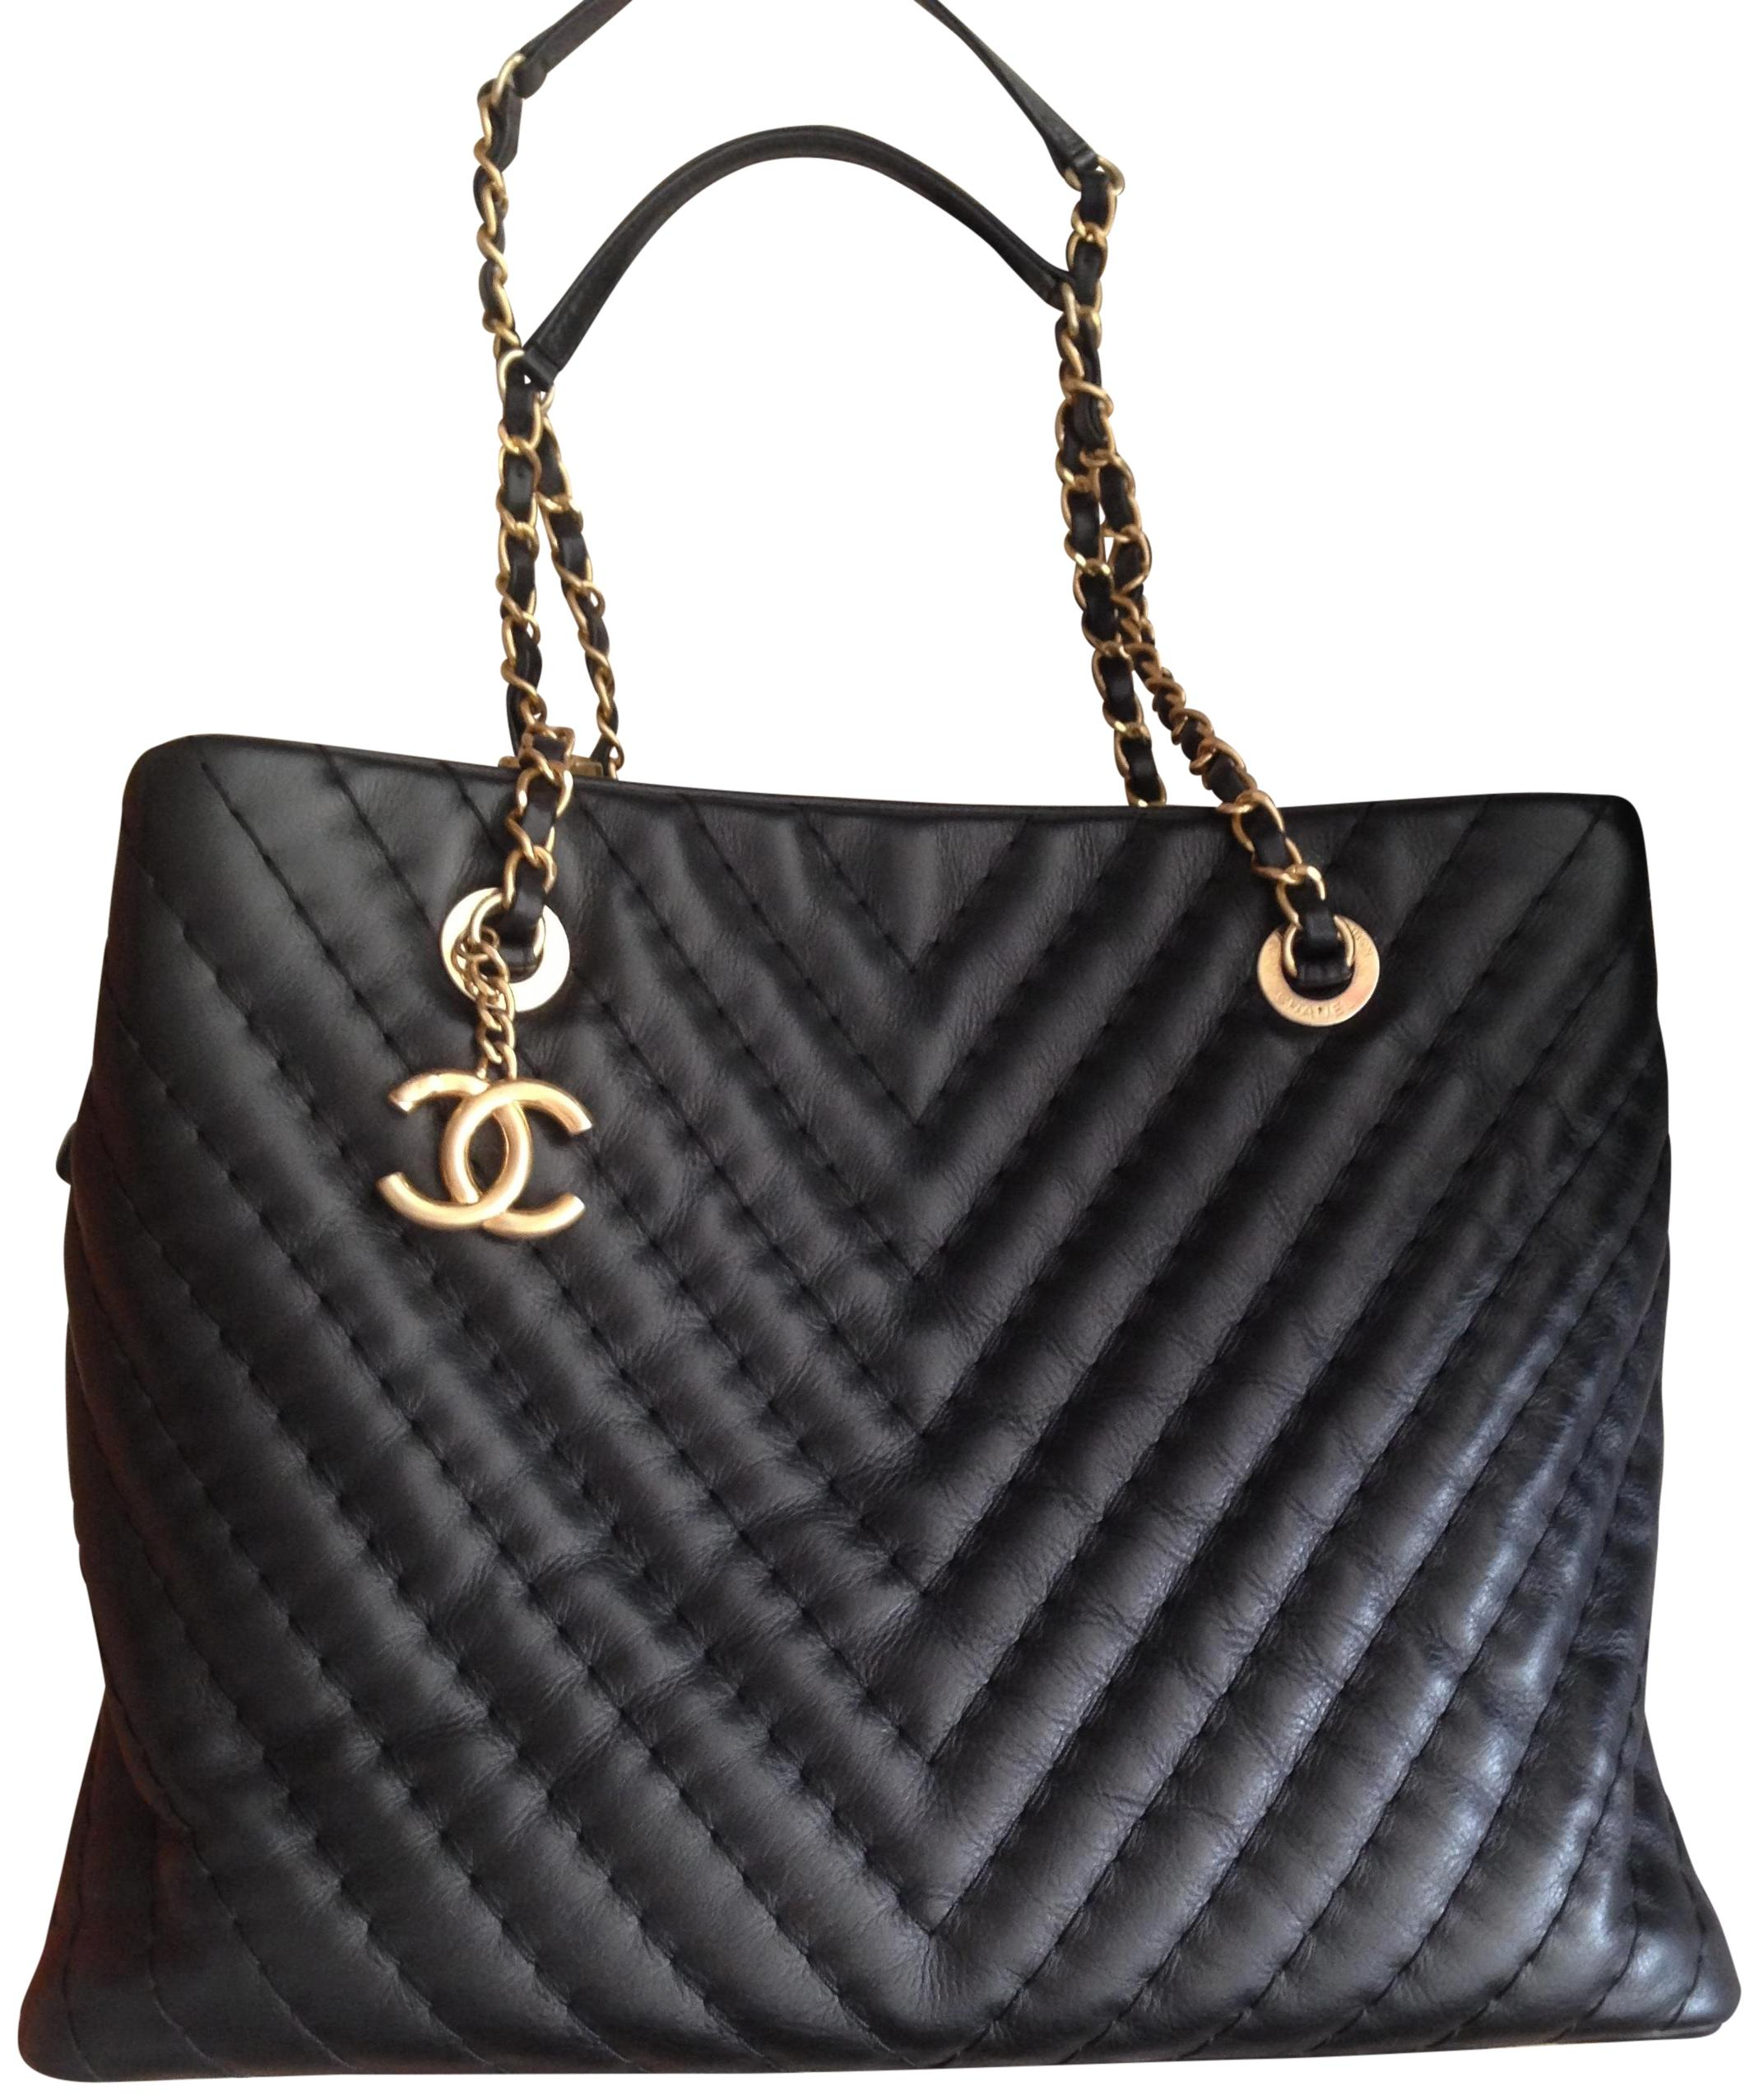 Chanel Black Lambskin Leather Quilted Chevron Large Tote